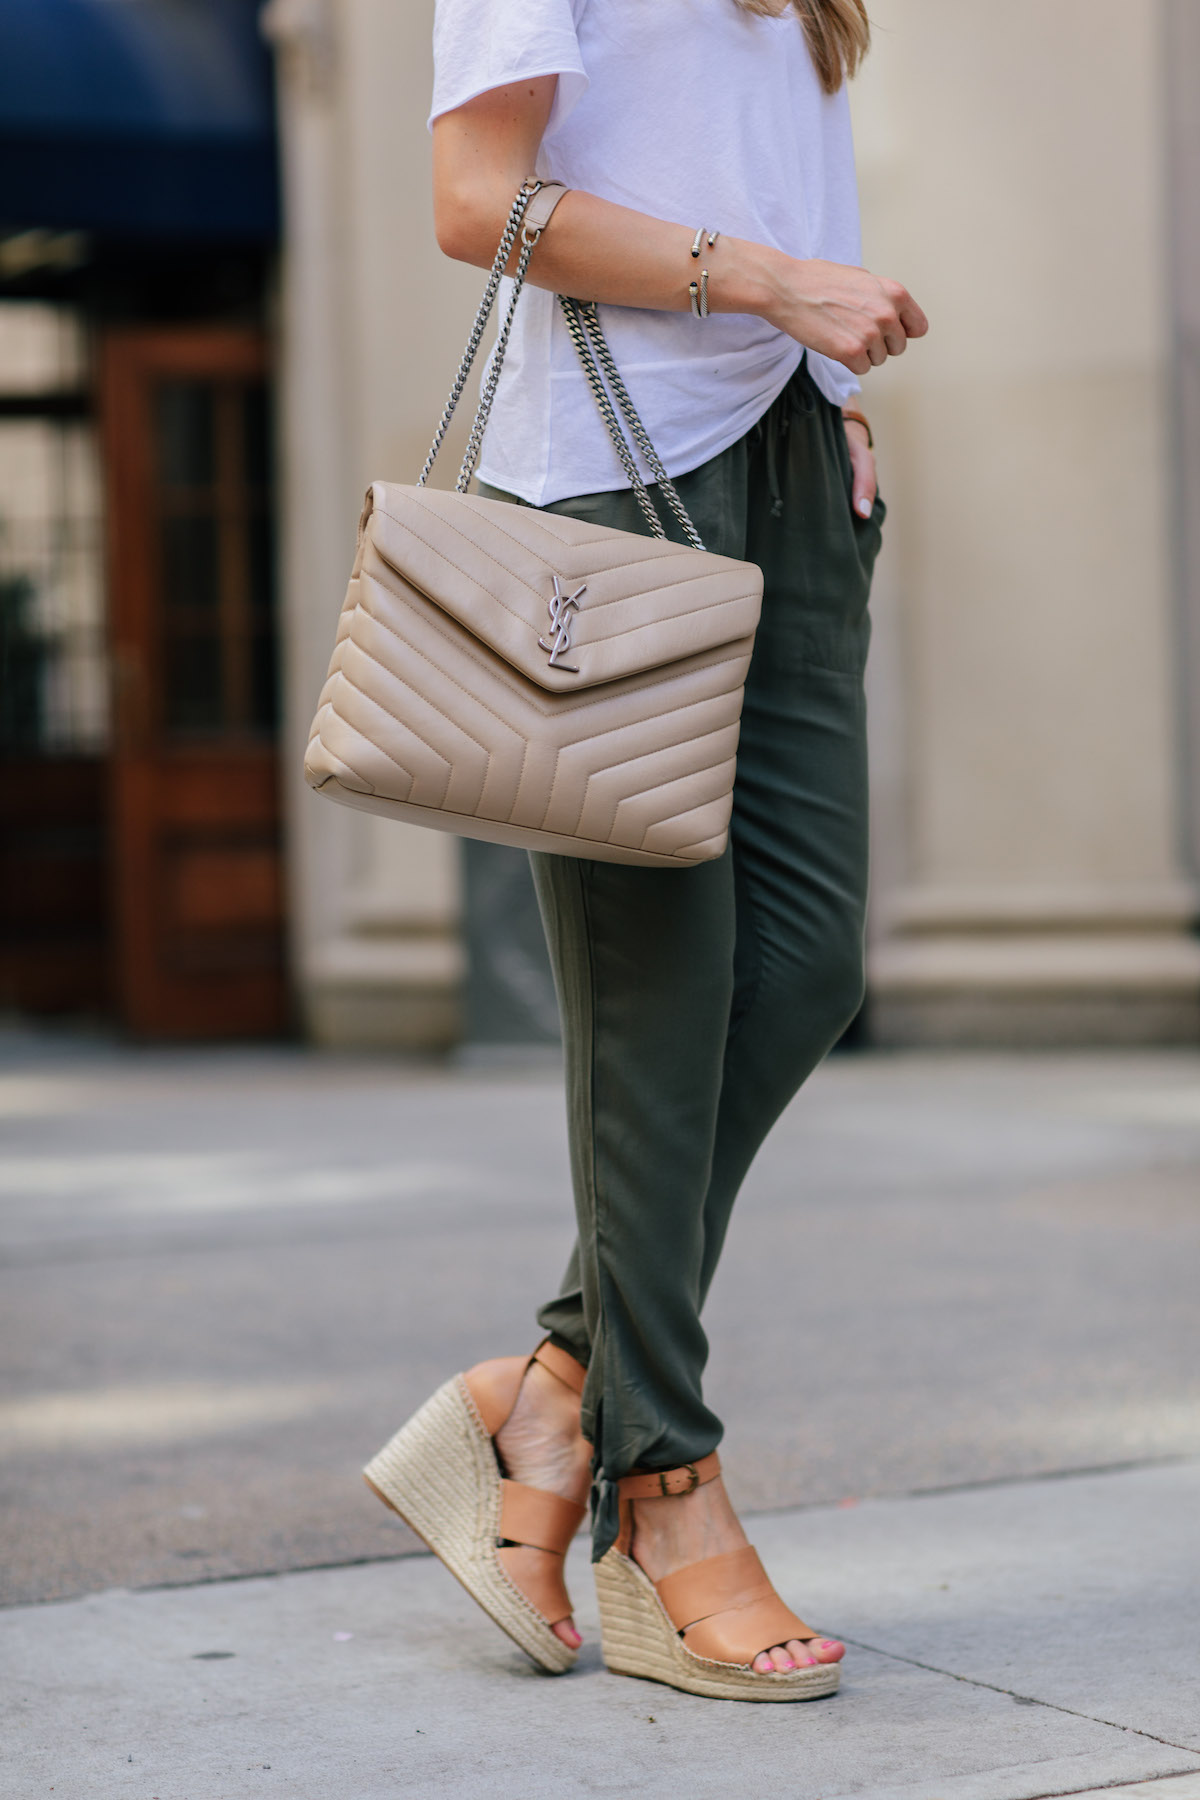 Weekday Style New Comfy Budget Finds Under 50 Katie